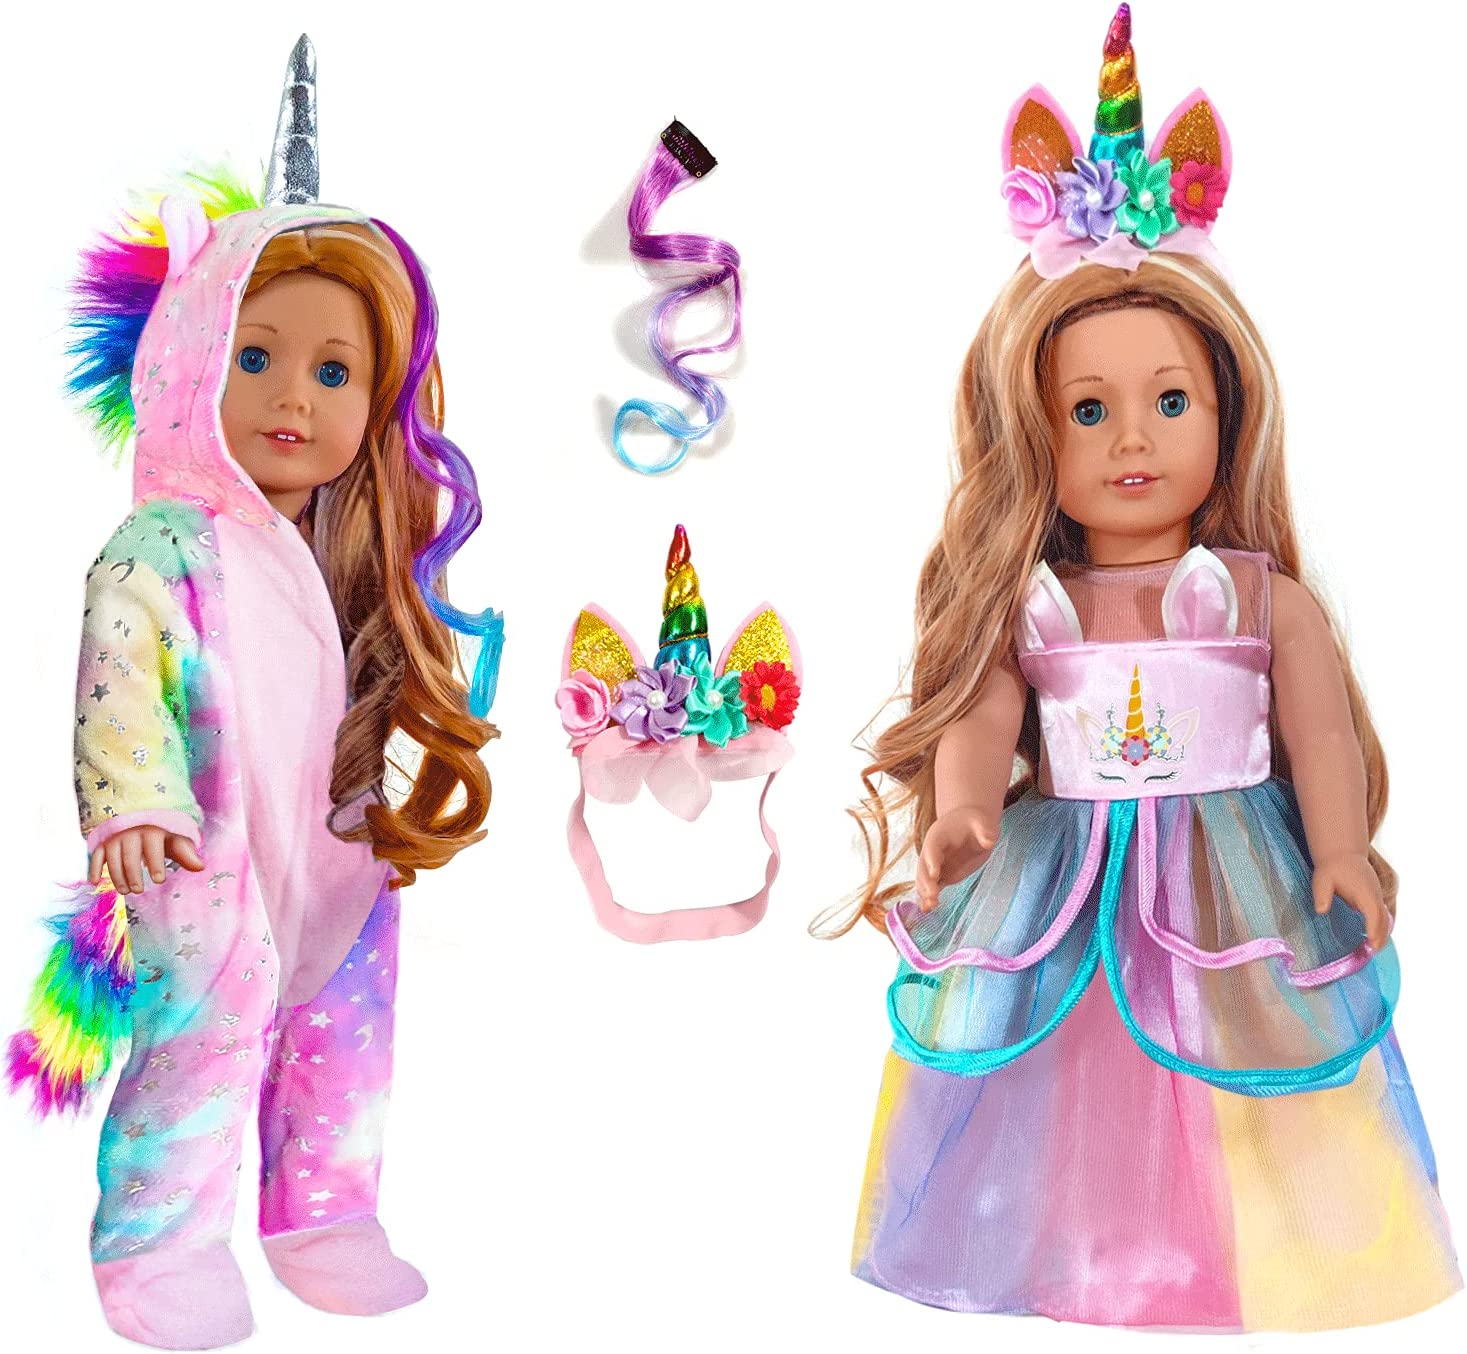 2-Sets 18-inch Doll-Clothes Set - Unicorn Clothes with Hair Clip and Headband - Compatible with All American 18 inch Girl Dolls Like Our Generation, My Life Gotz Dolls Accessories for Kids-Pink